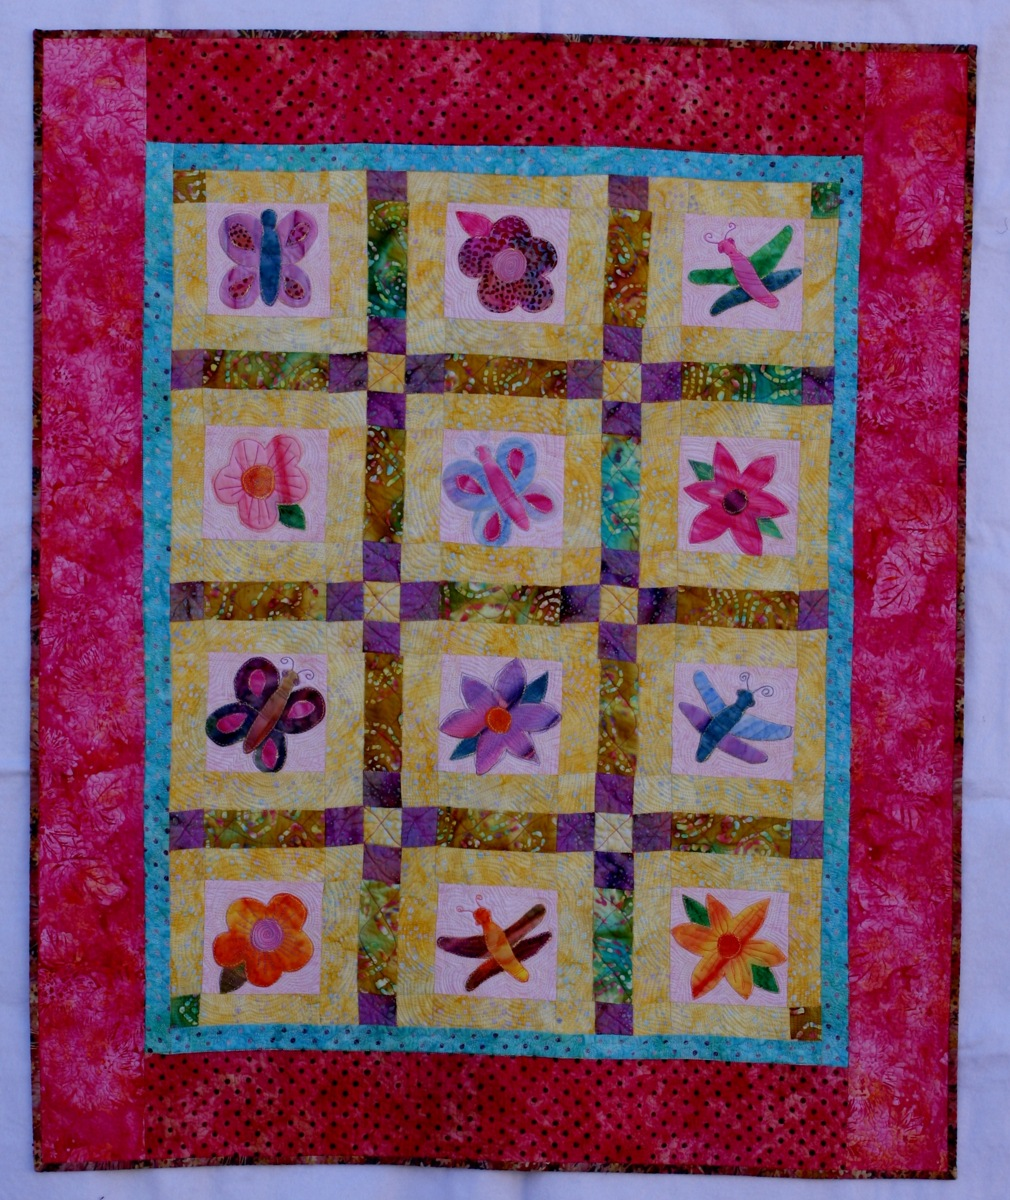 Mayla's Quilt (large view)